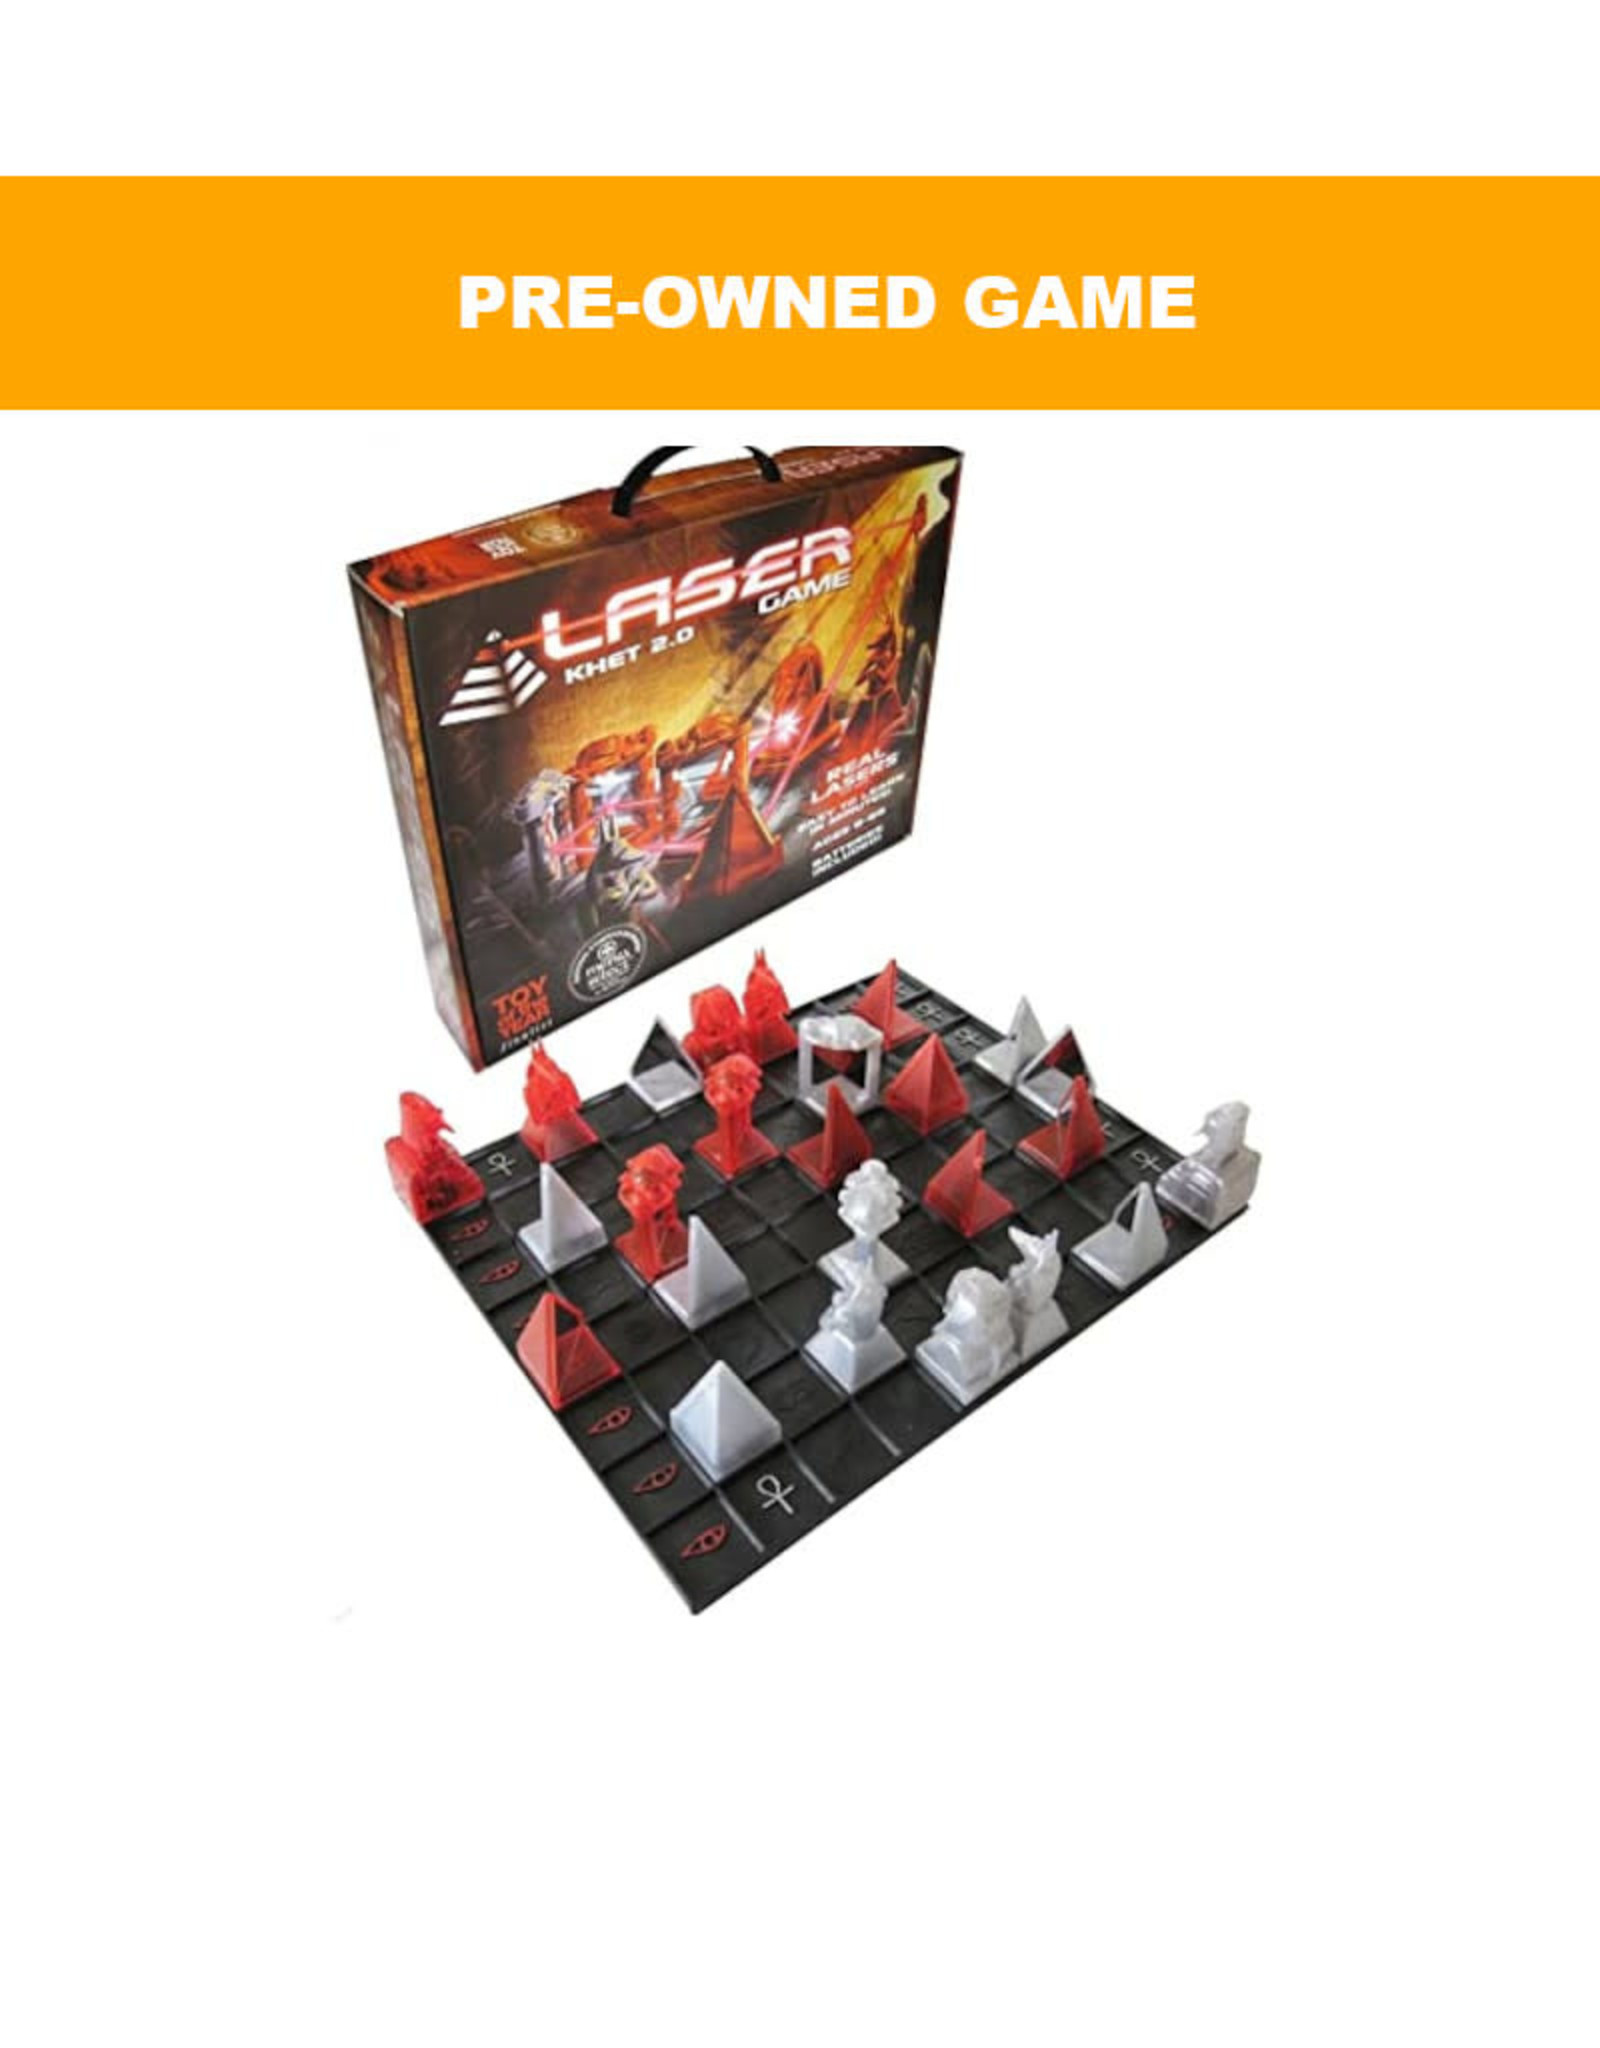 Miscellaneous (Pre-Owned Game) Khet 2.0 Laser Game